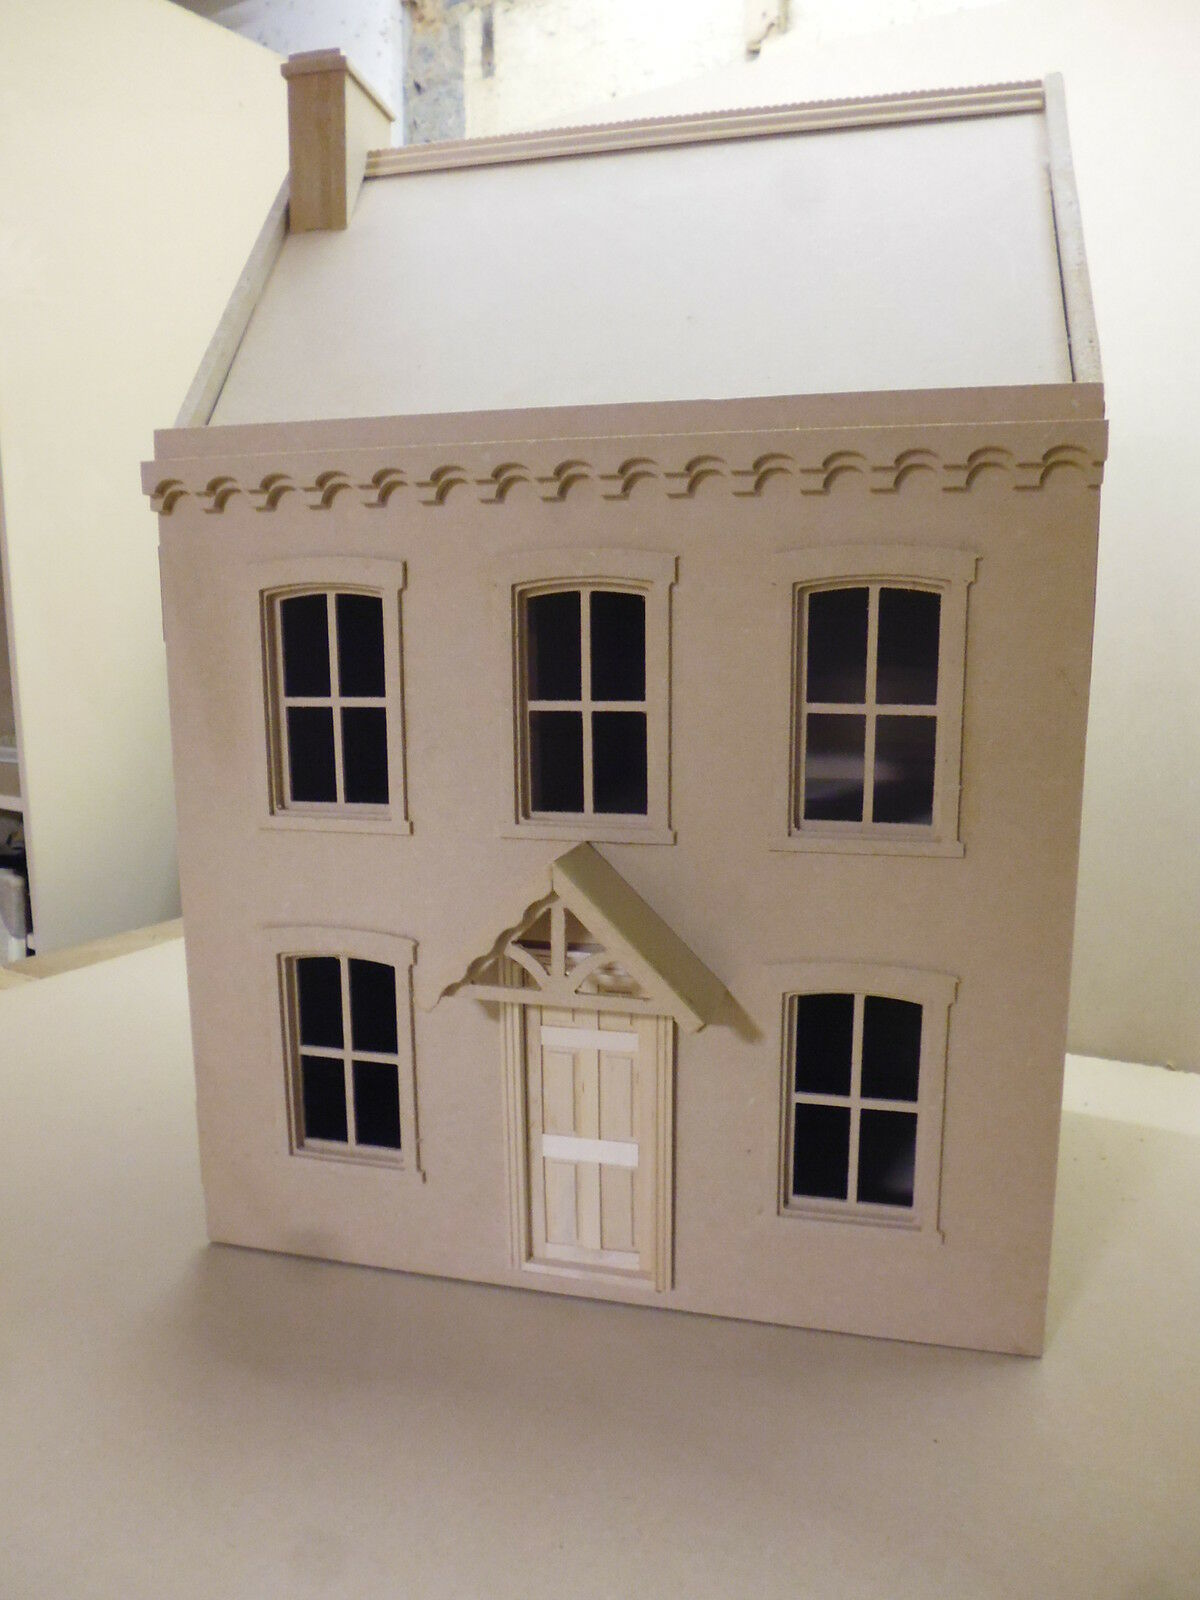 24th scale Dolls haus Stratfield Cottage 4 rooms Kit by Dolls haus Direct